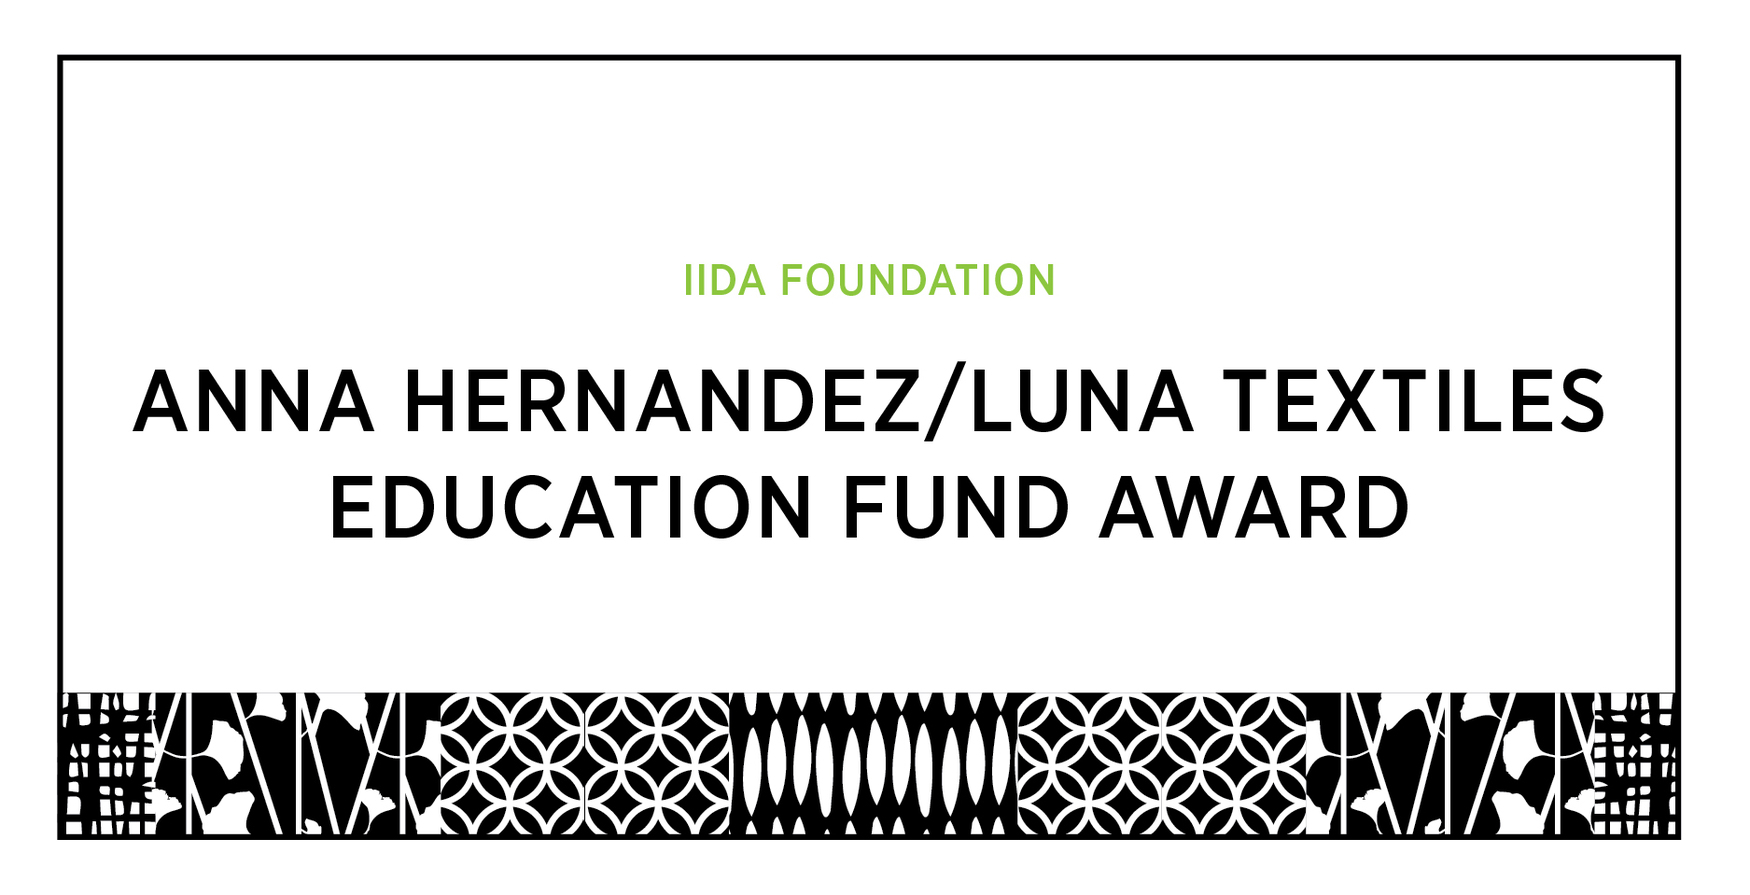 AWARD WINNER OF ANNA HERNANDEZ/LUNA TEXTILES EDUCATION FUND AWARD